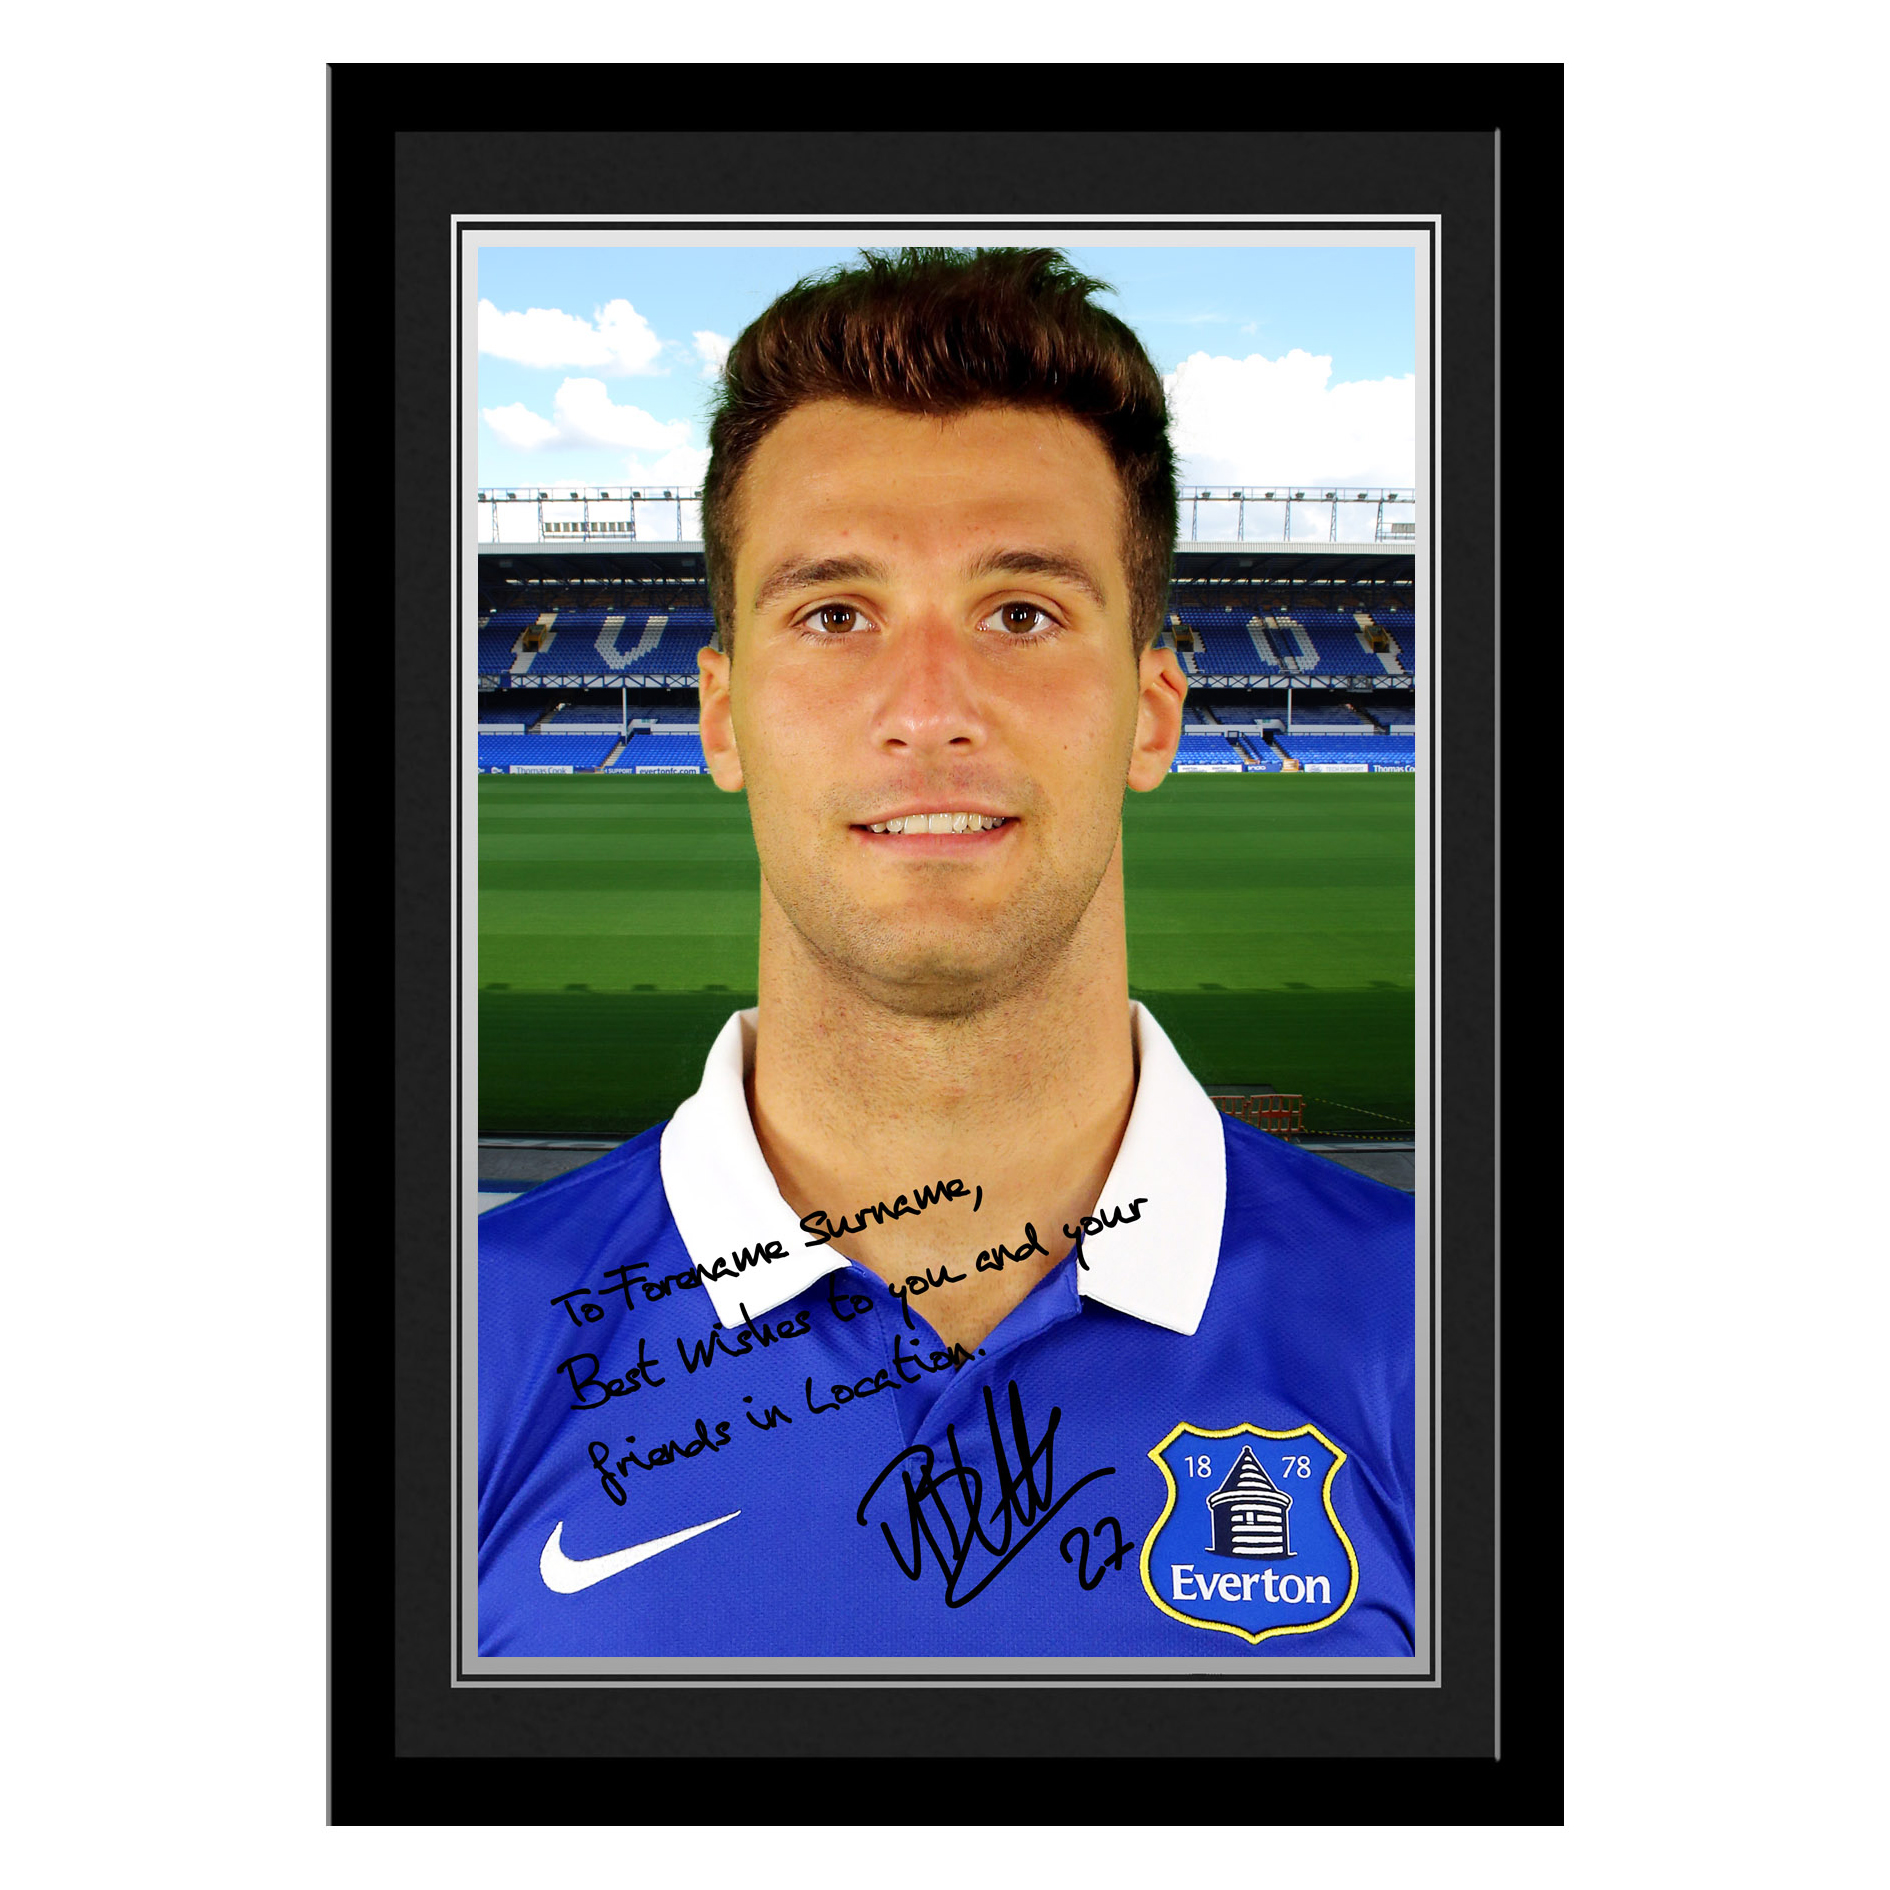 Everton Personalised Signature Photo Framed - Vellios